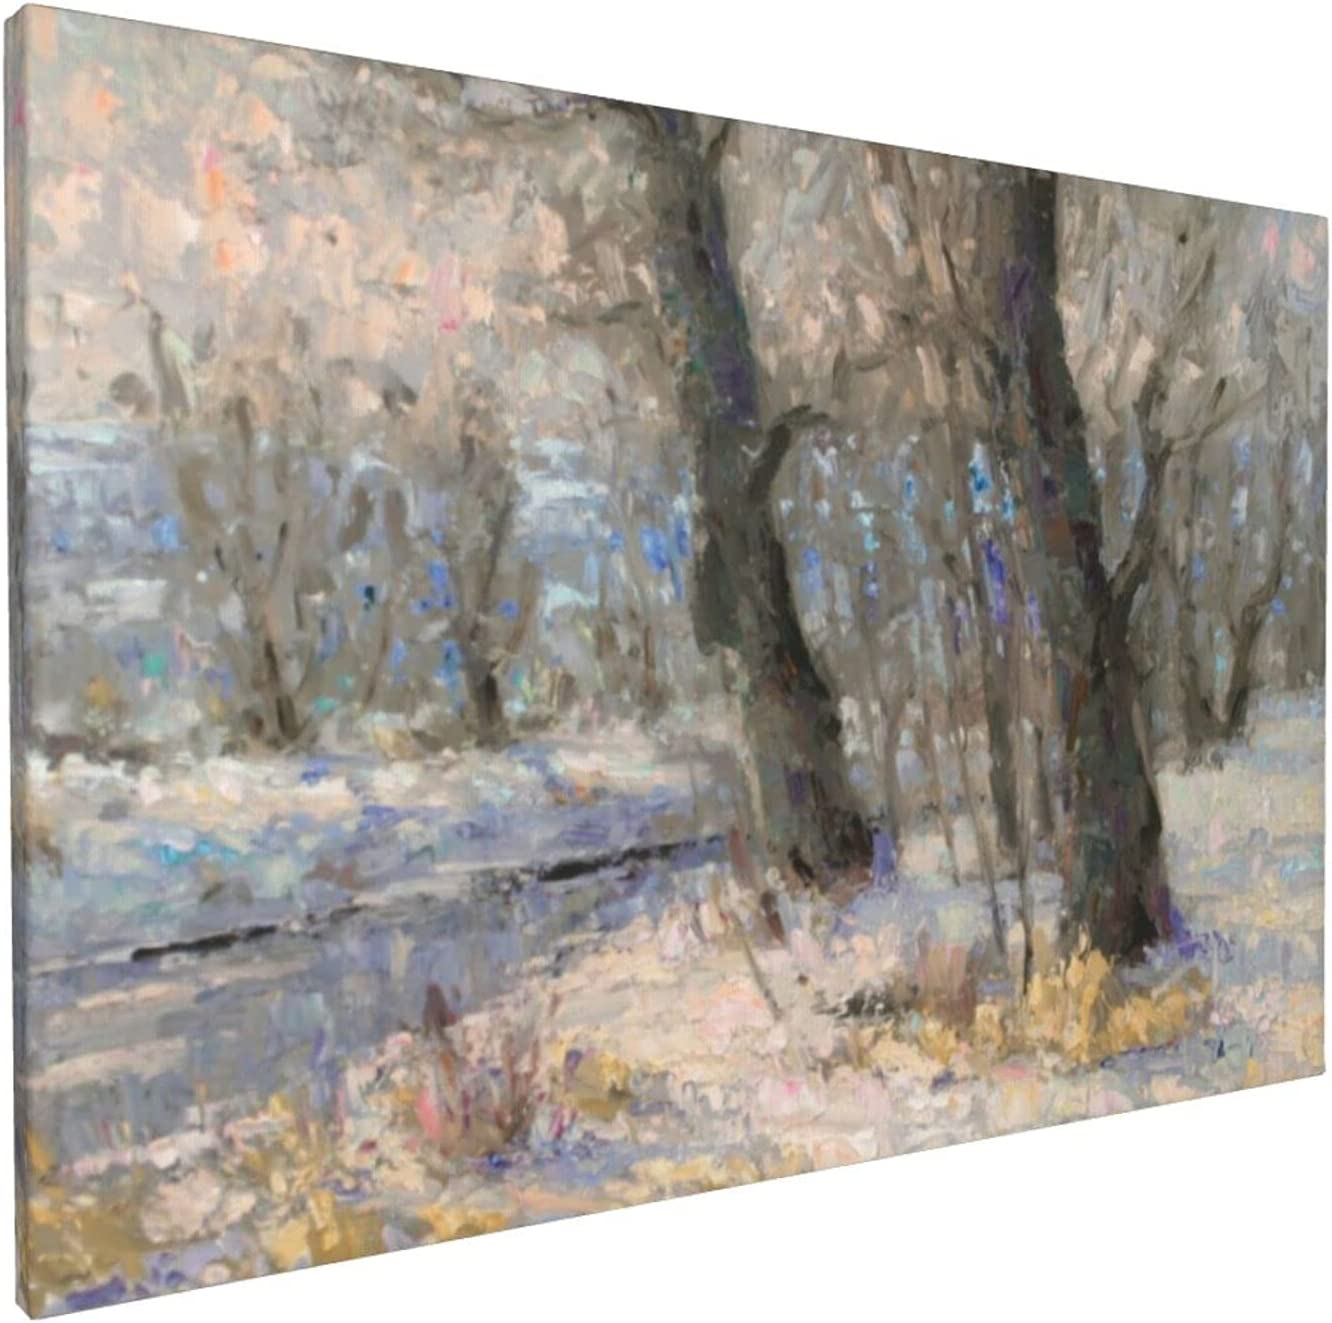 Natural Scenery Wall Art Popular shop is the lowest price 100% quality warranty! challenge Print Stretche Artwork Canvas Paintings